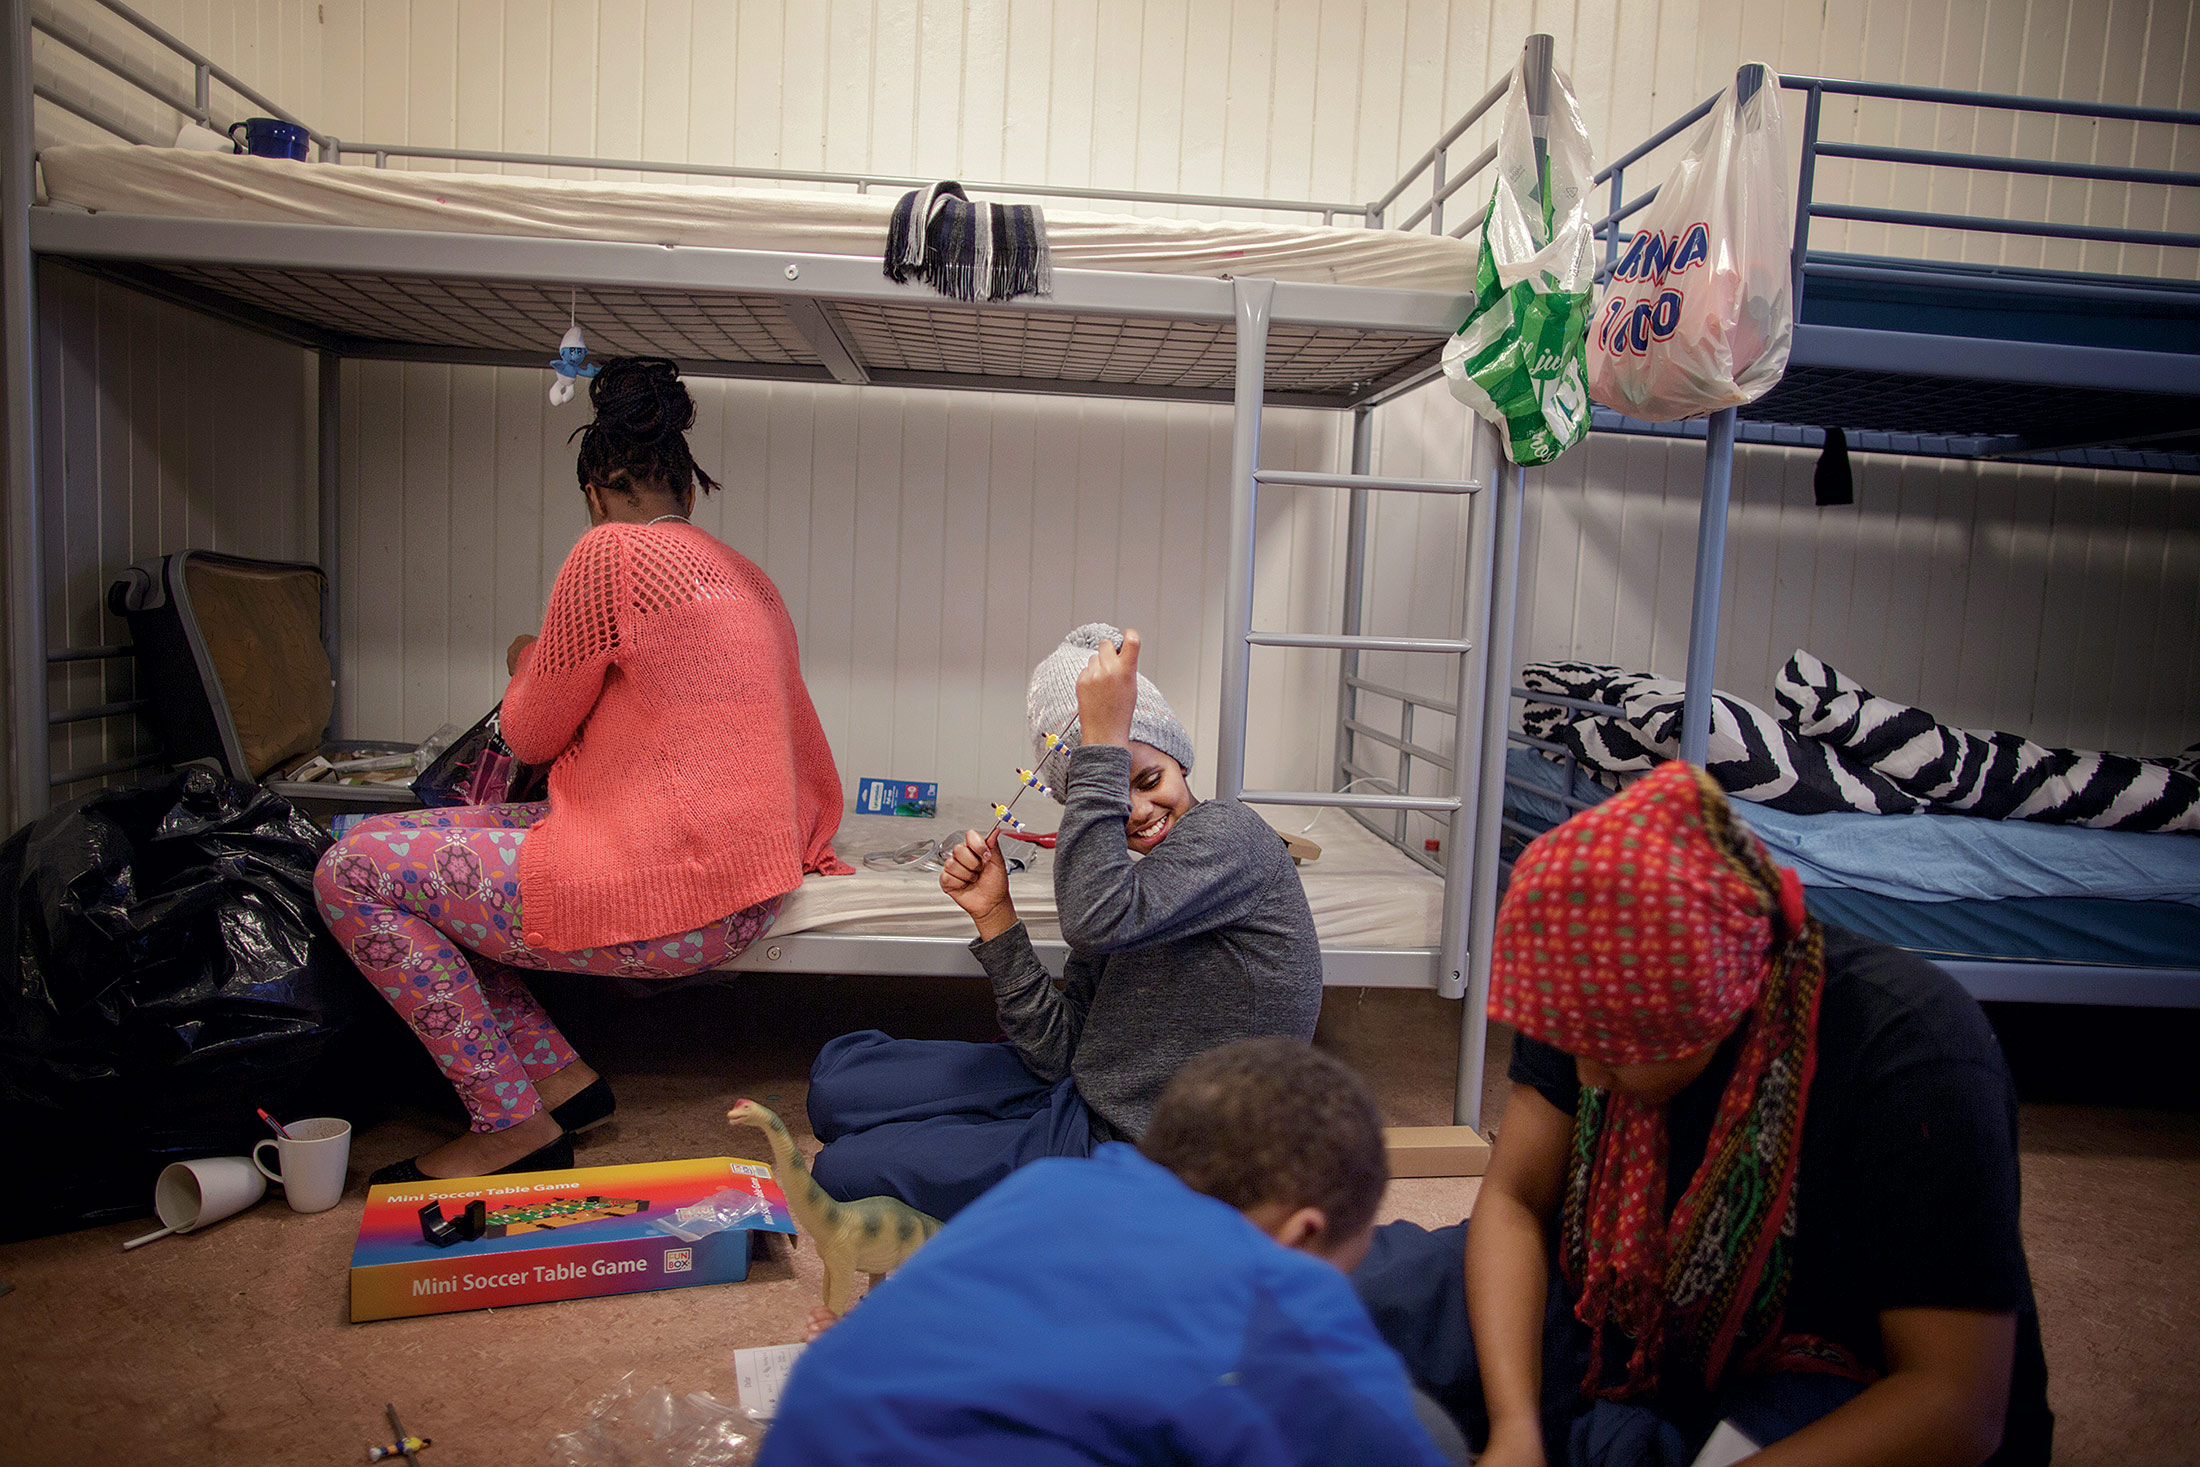 Mikal Tedros, 19, and her siblings Bethelhim, 12, Evenezer, 8, and Salina, 17, from Eritrea, in their room at the Refstad reception center in Oslo. Mikal takes care of her sisters and brother, and they have been staying at the center for a month.